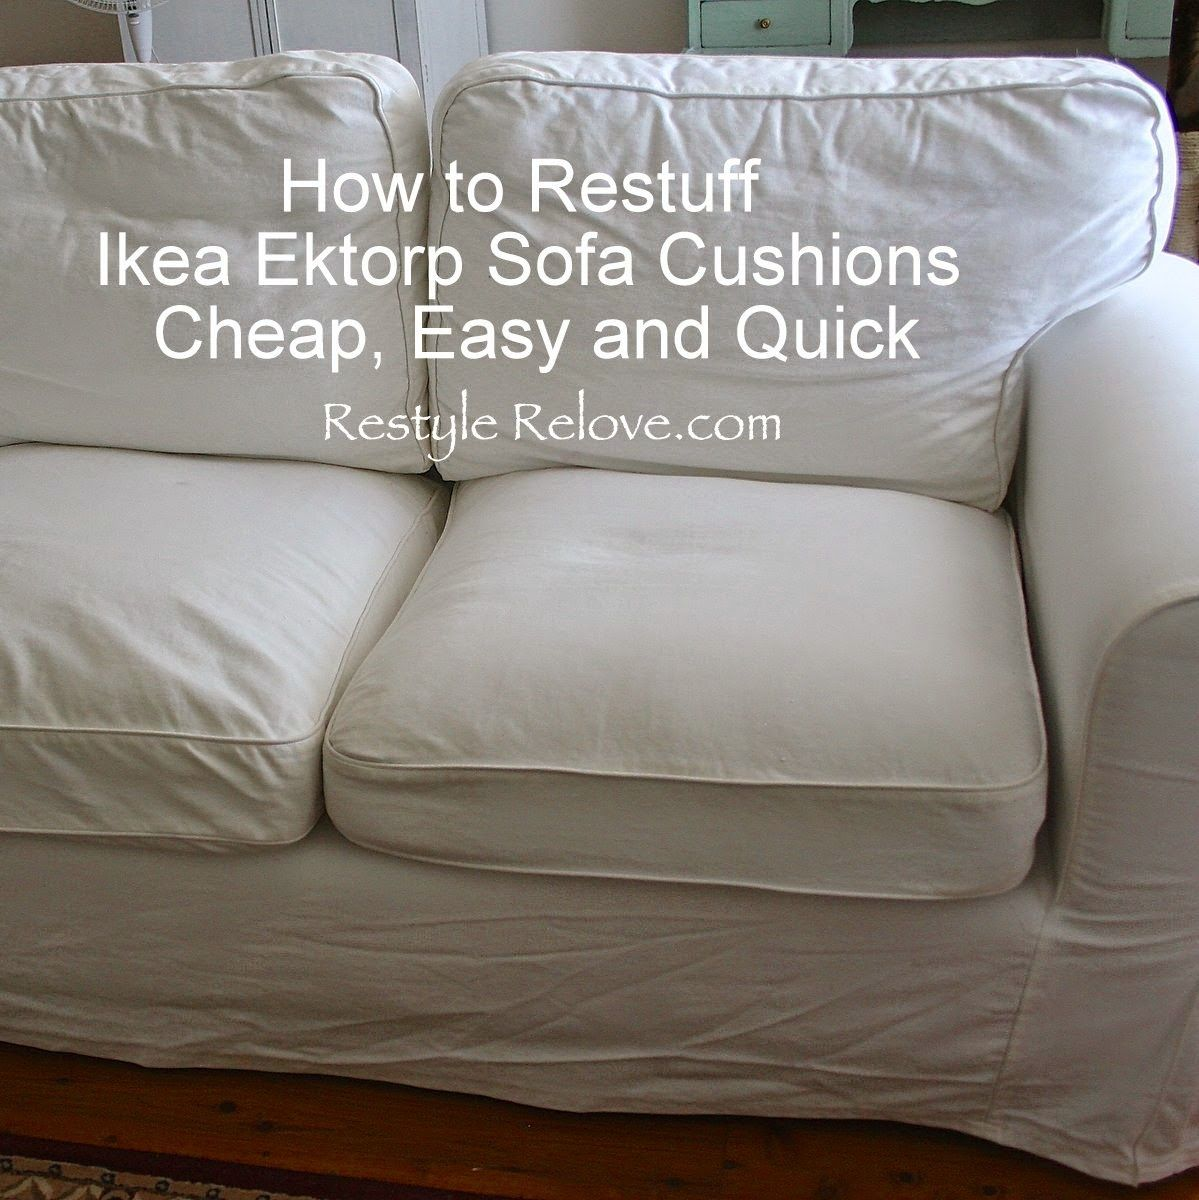 Restyle Relove How To Restuff Ikea Ektorp Sofa Cushions Cheap Easy And Quick Home